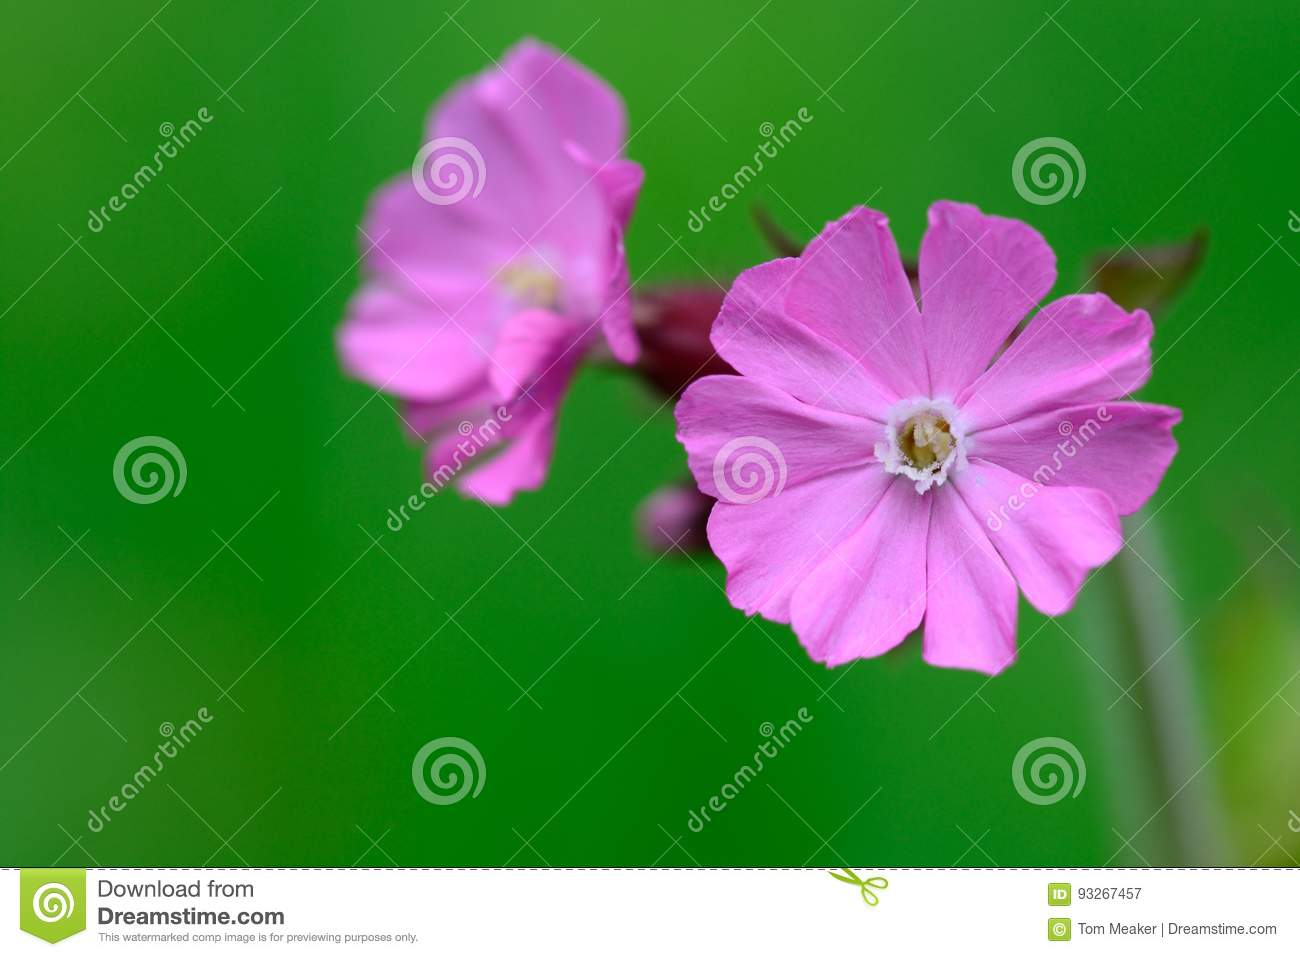 Pink campion flowers stock image image of spring season 93267457 download pink campion flowers stock image image of spring season 93267457 mightylinksfo